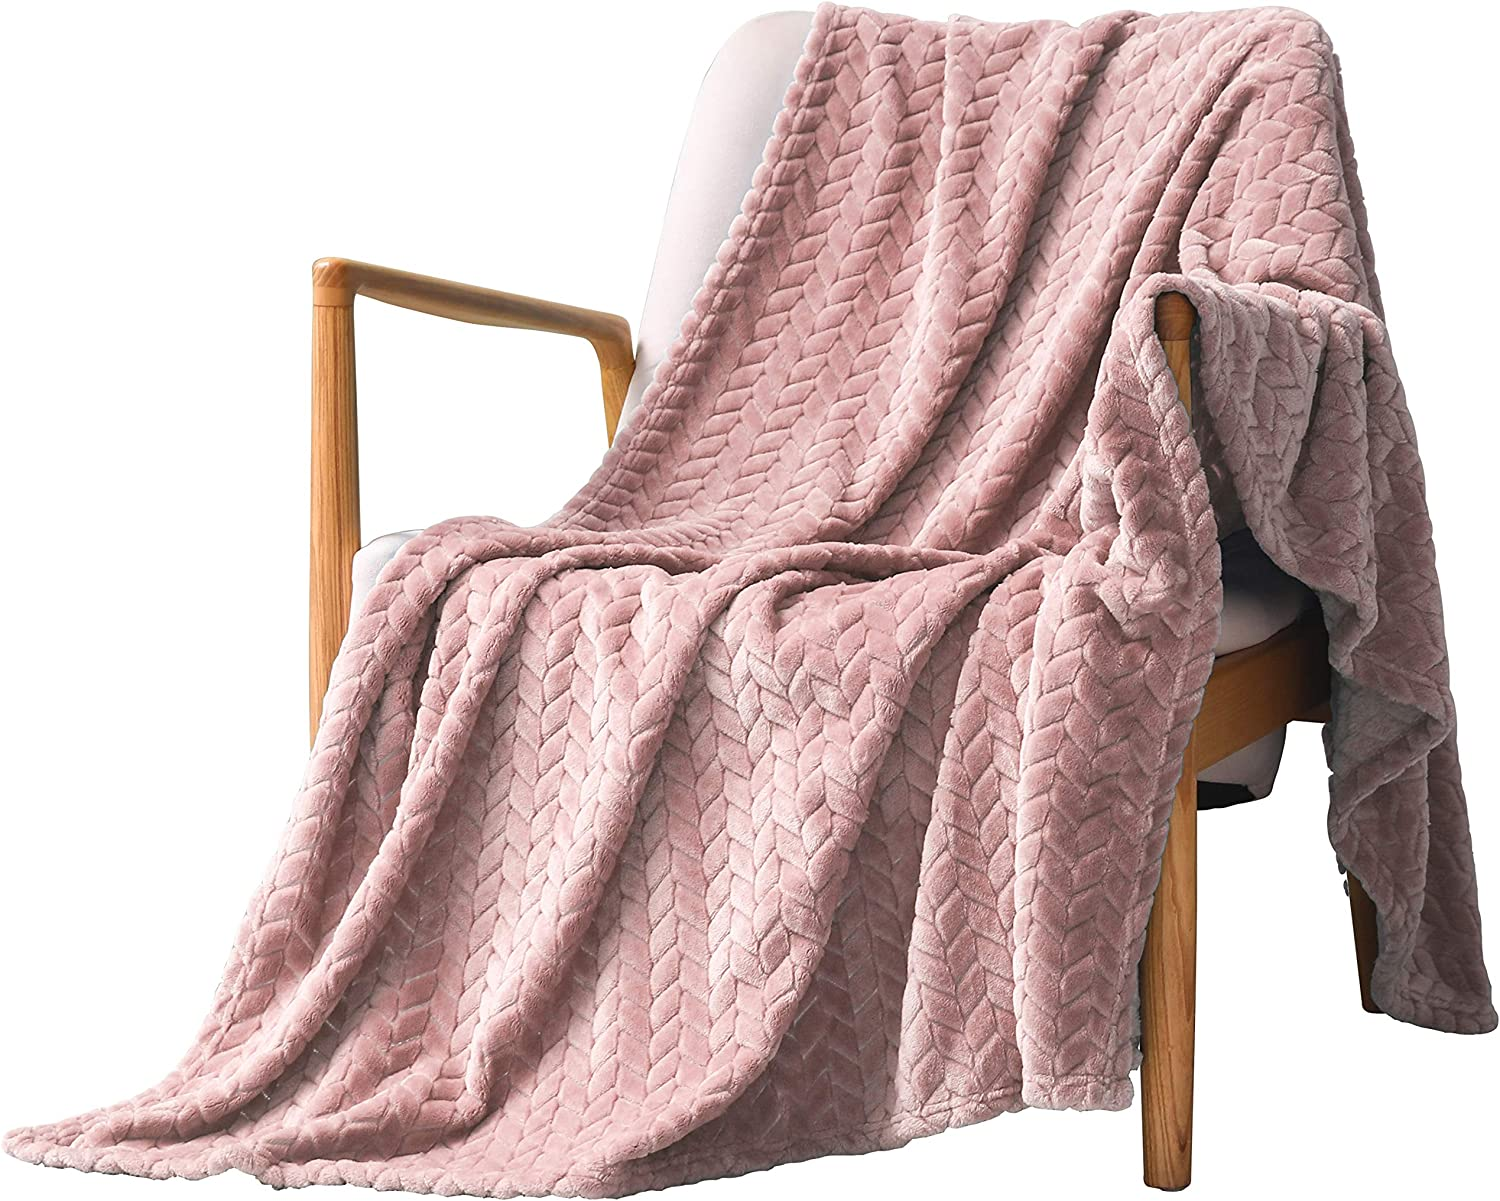 """Exclusivo Mezcla Large Flannel Fleece Throw Blanket, Jacquard Weave Leaves Pattern (50"""" x 70"""", Pink) - Soft, Warm, Lightweight and Decorative"""